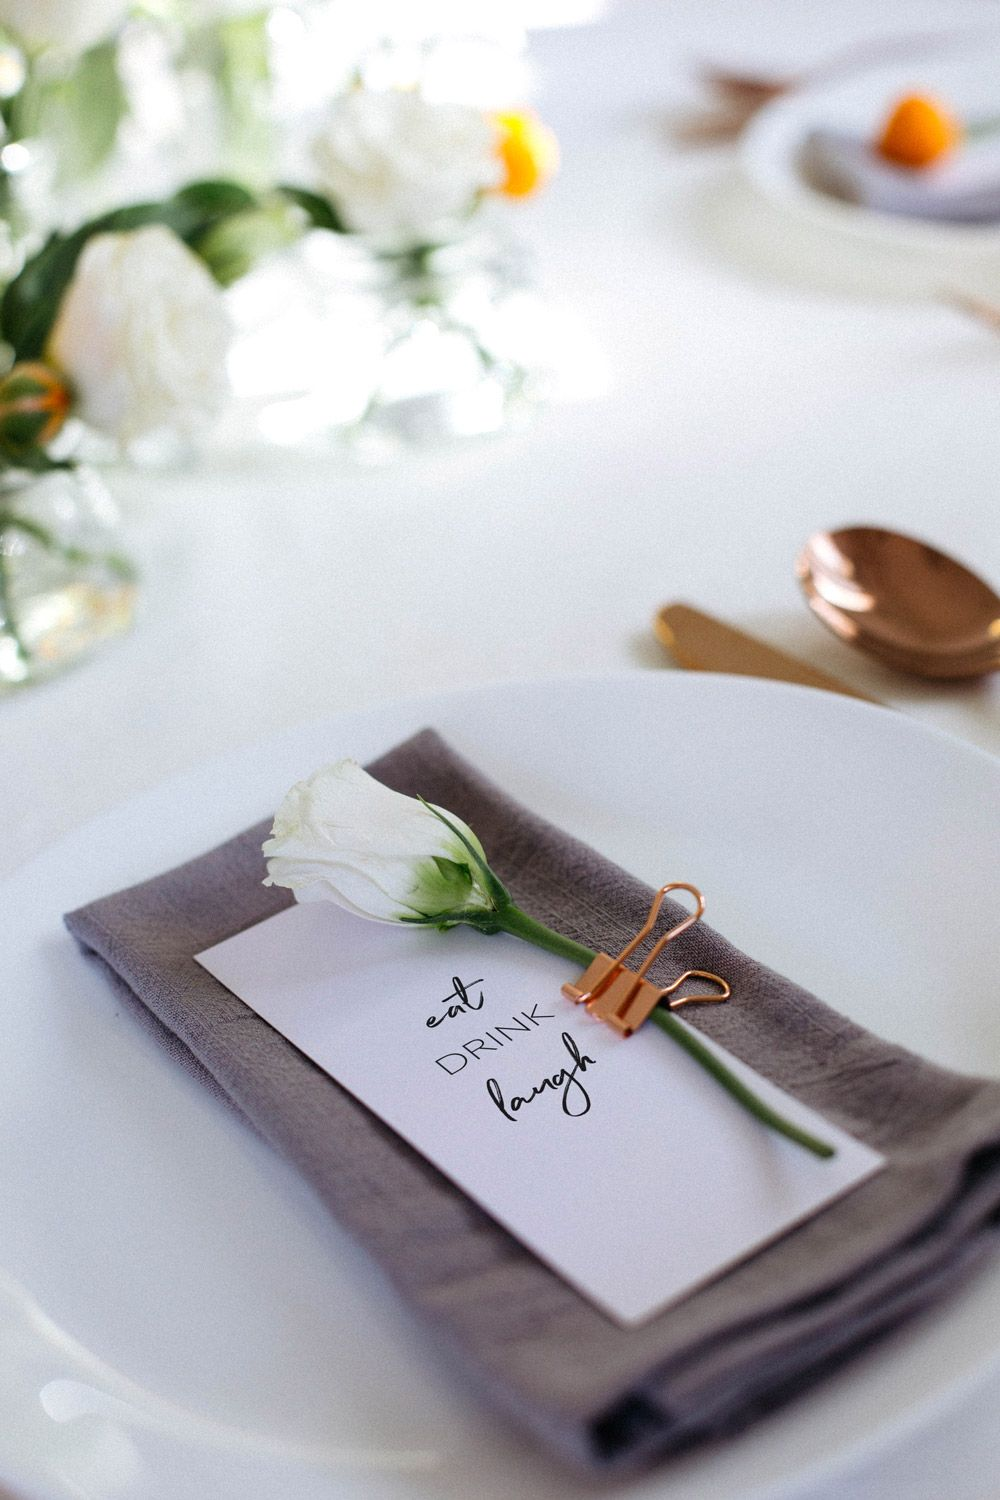 Styling a floral table setting   Flower market, Table settings and ...